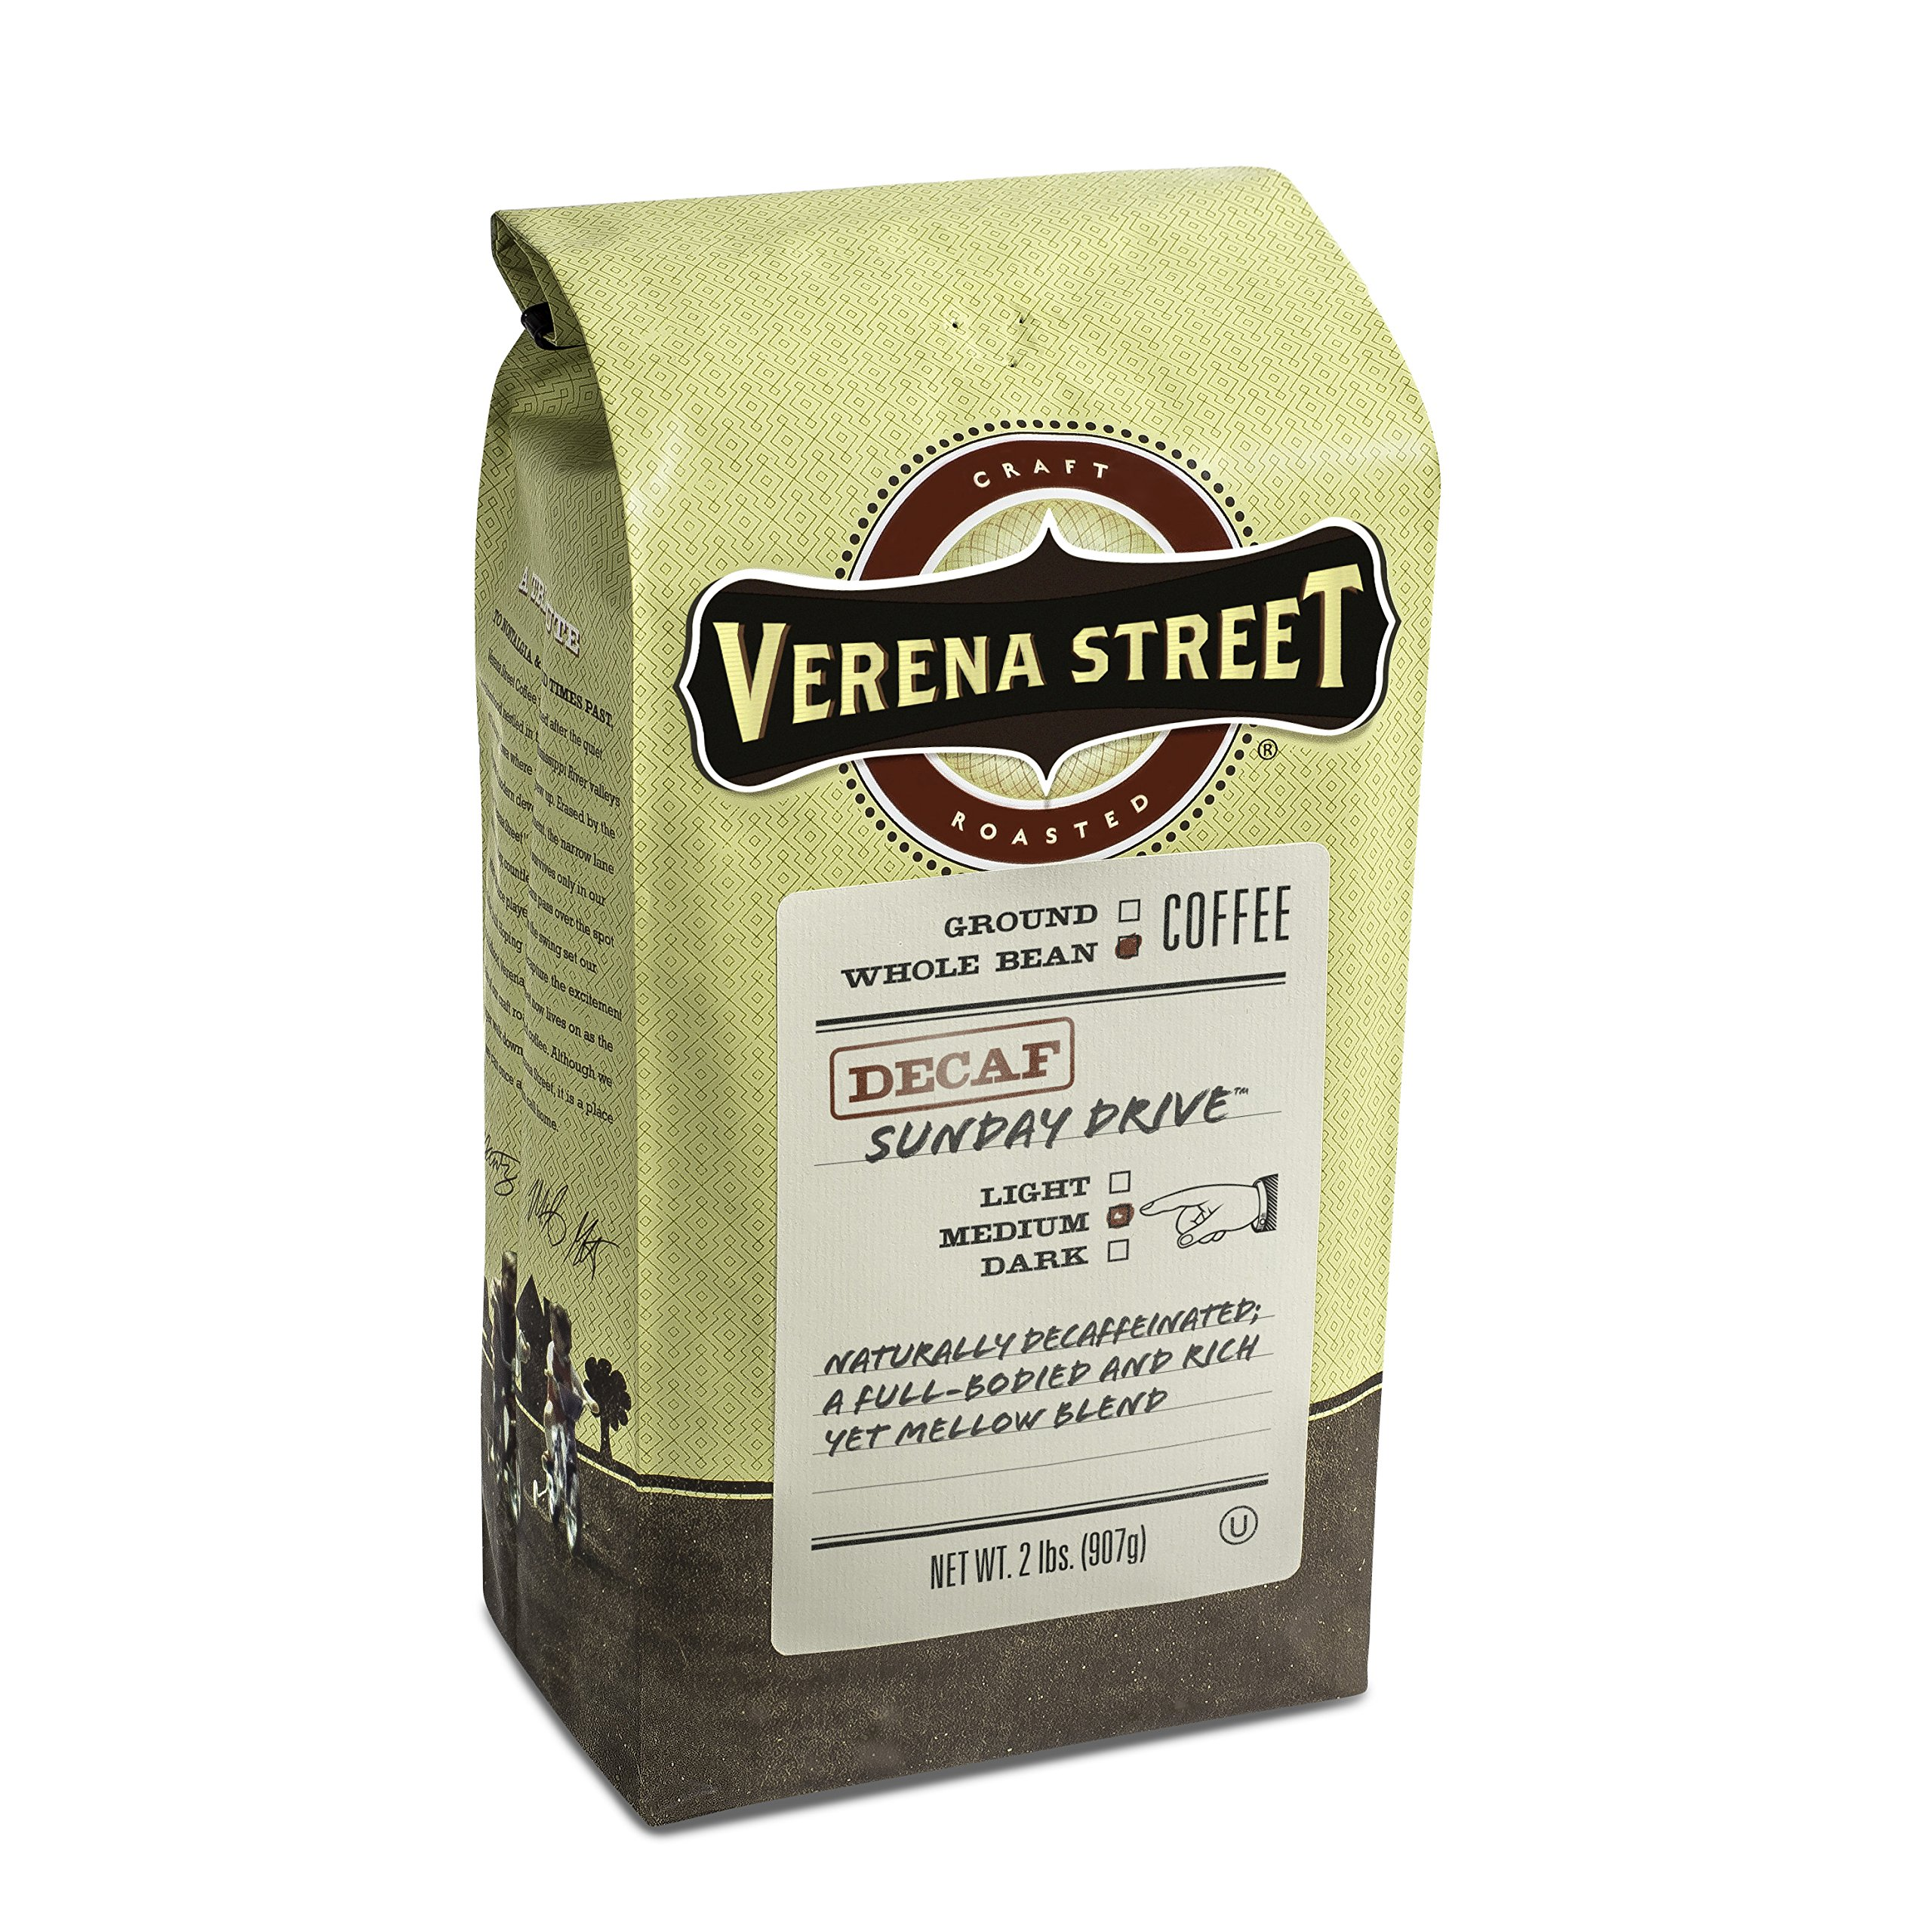 Verena Street 2 Pound Whole Bean, Swiss Water Process Decaf Beans, Sunday Drive Decaffeinated, Medium Roast Rainforest Alliance Certified Arabica Coffee by Verena Street